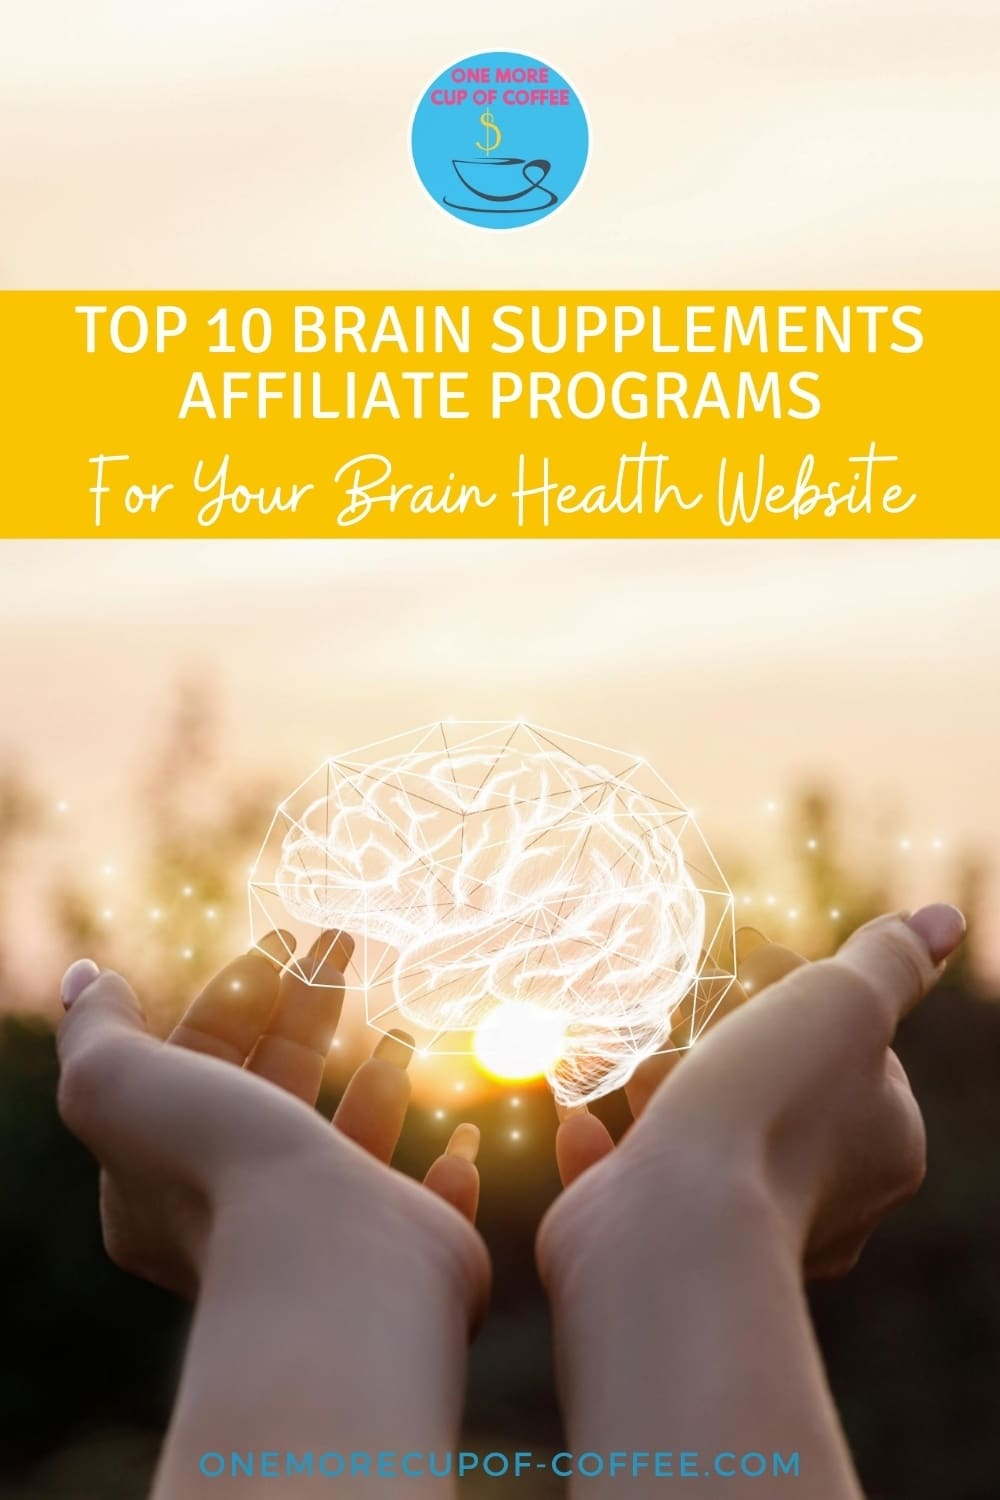 """two hands holding out a brain hologram into the sky, with text overlay """"Top 10 Brain Supplements Affiliate Programs For Your Brain Health Website"""""""